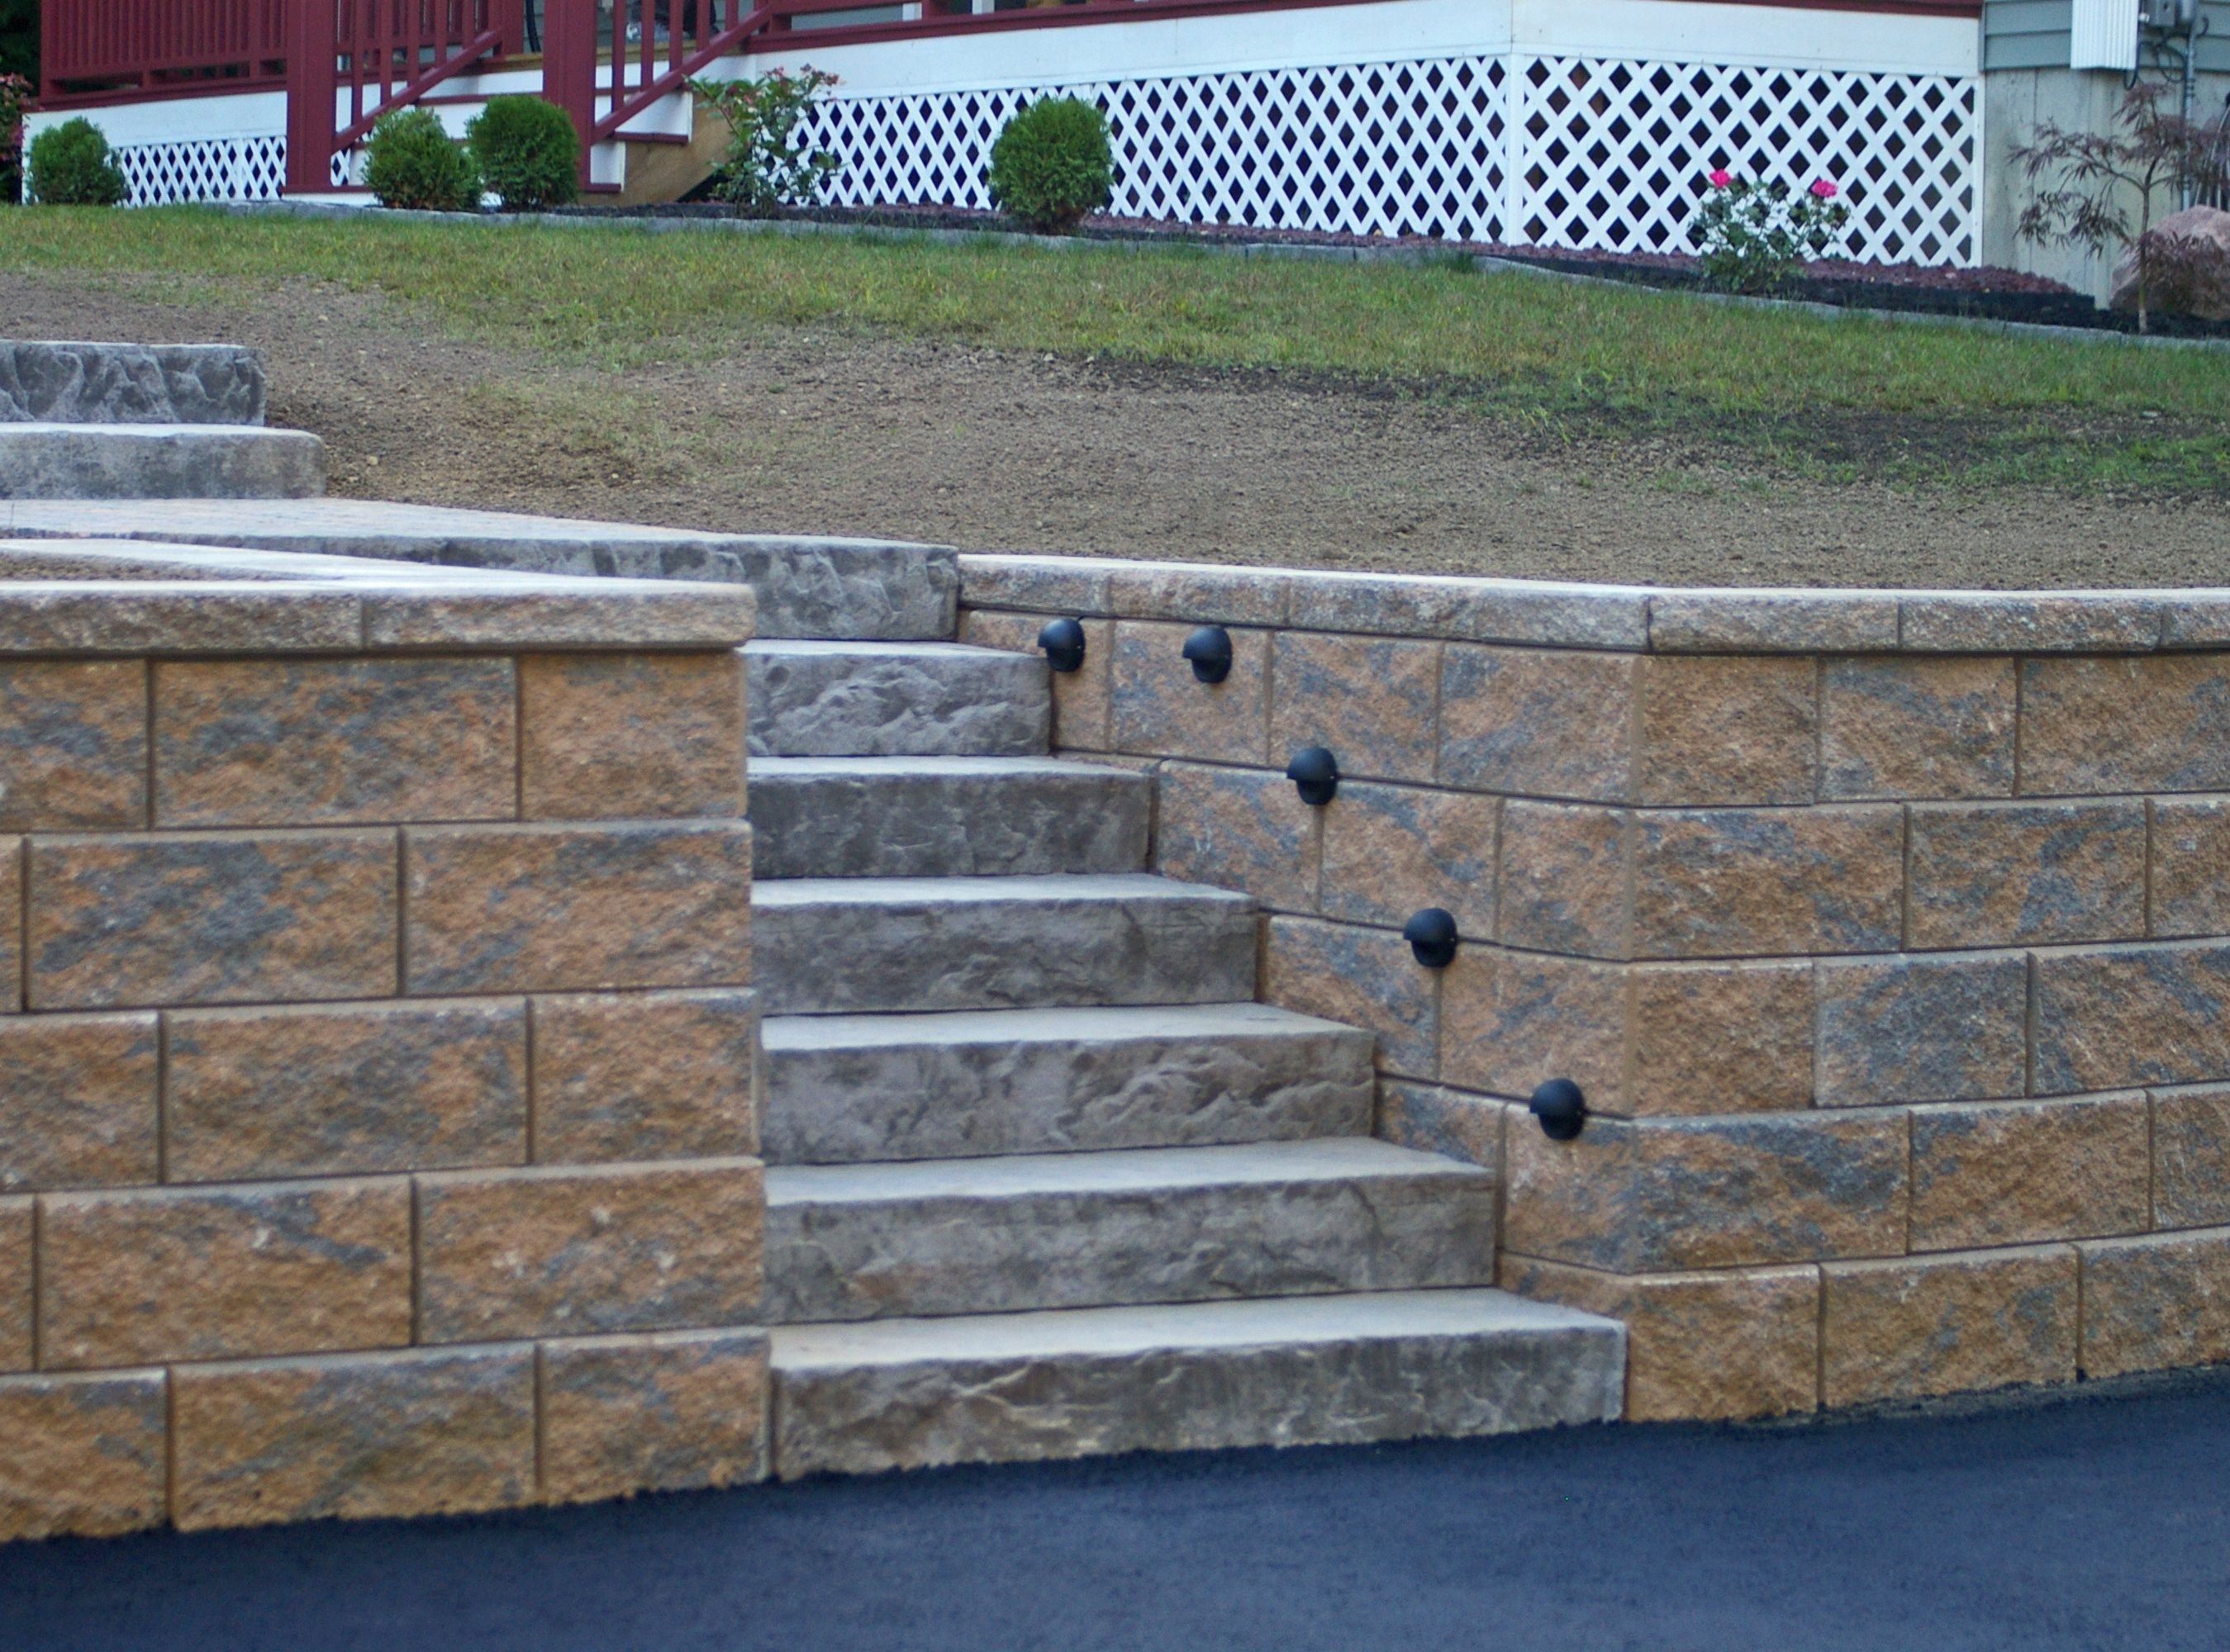 Retaining Wall And Stairs Concrete Retaining Walls Retaining Wall Blocks Stone Retaining Wall